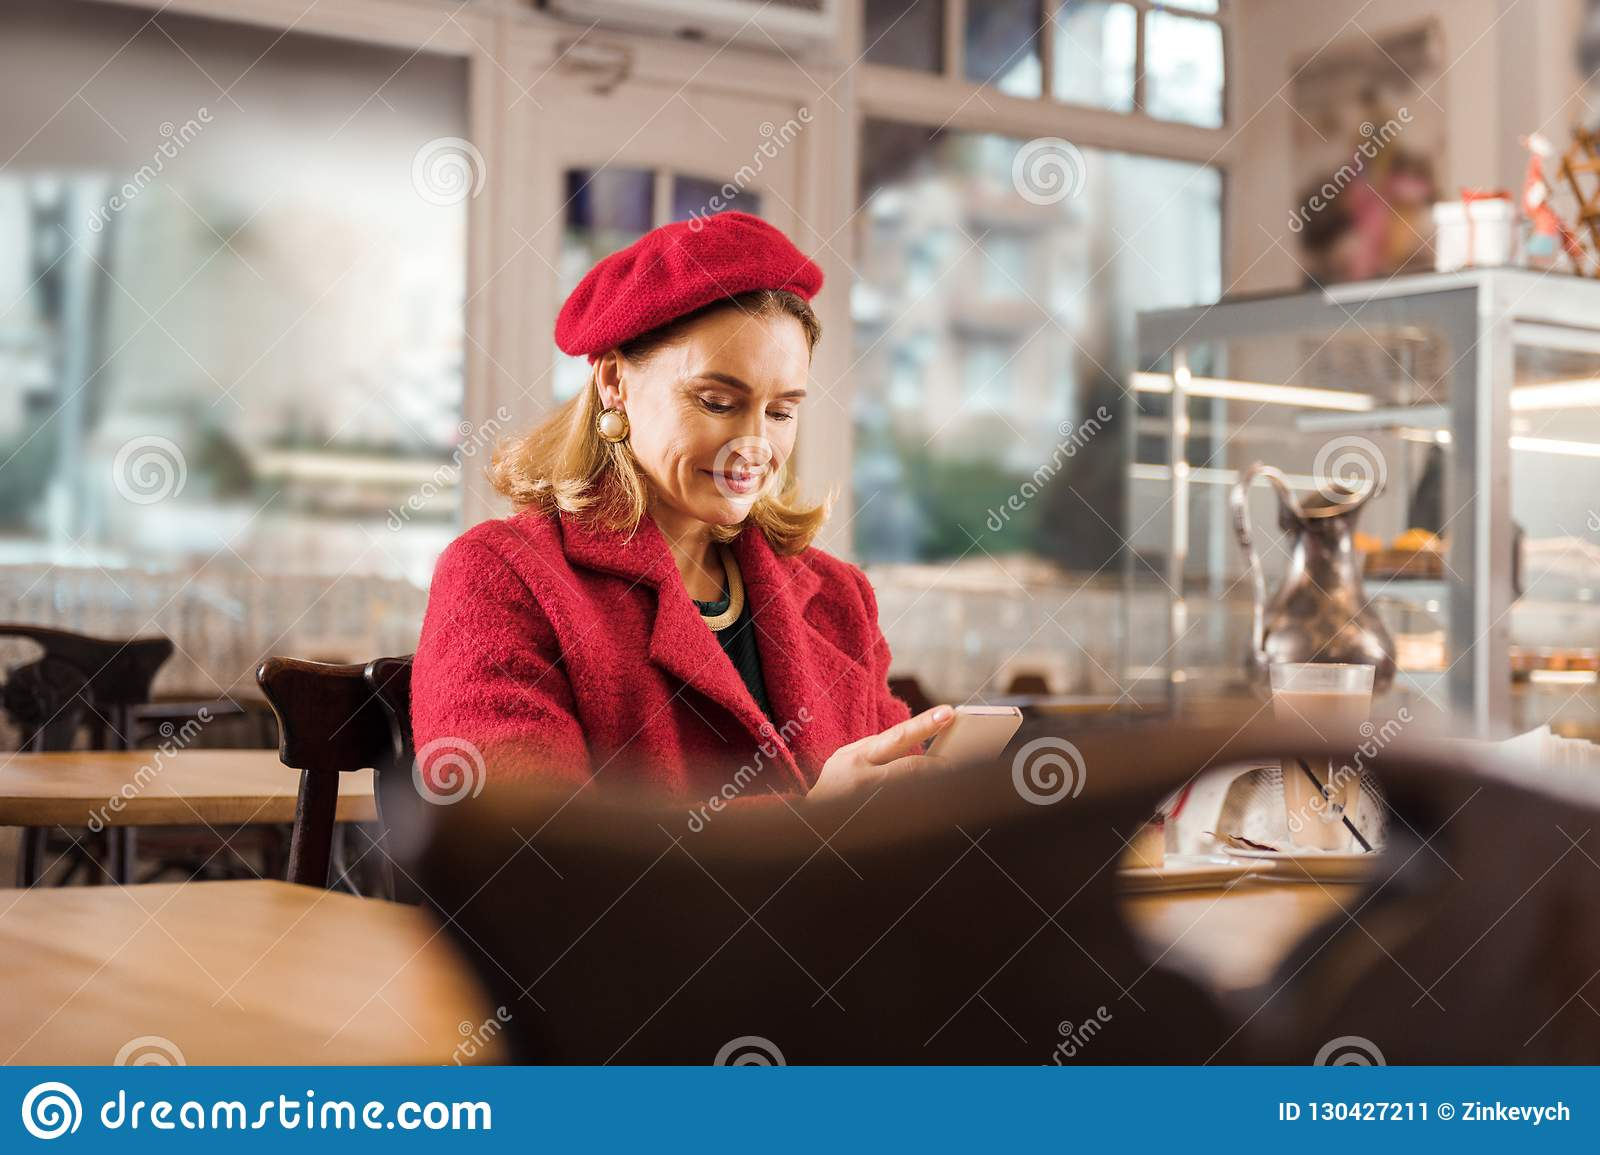 Mature appealing stylish woman feeling relaxed sitting in bakery on weekend